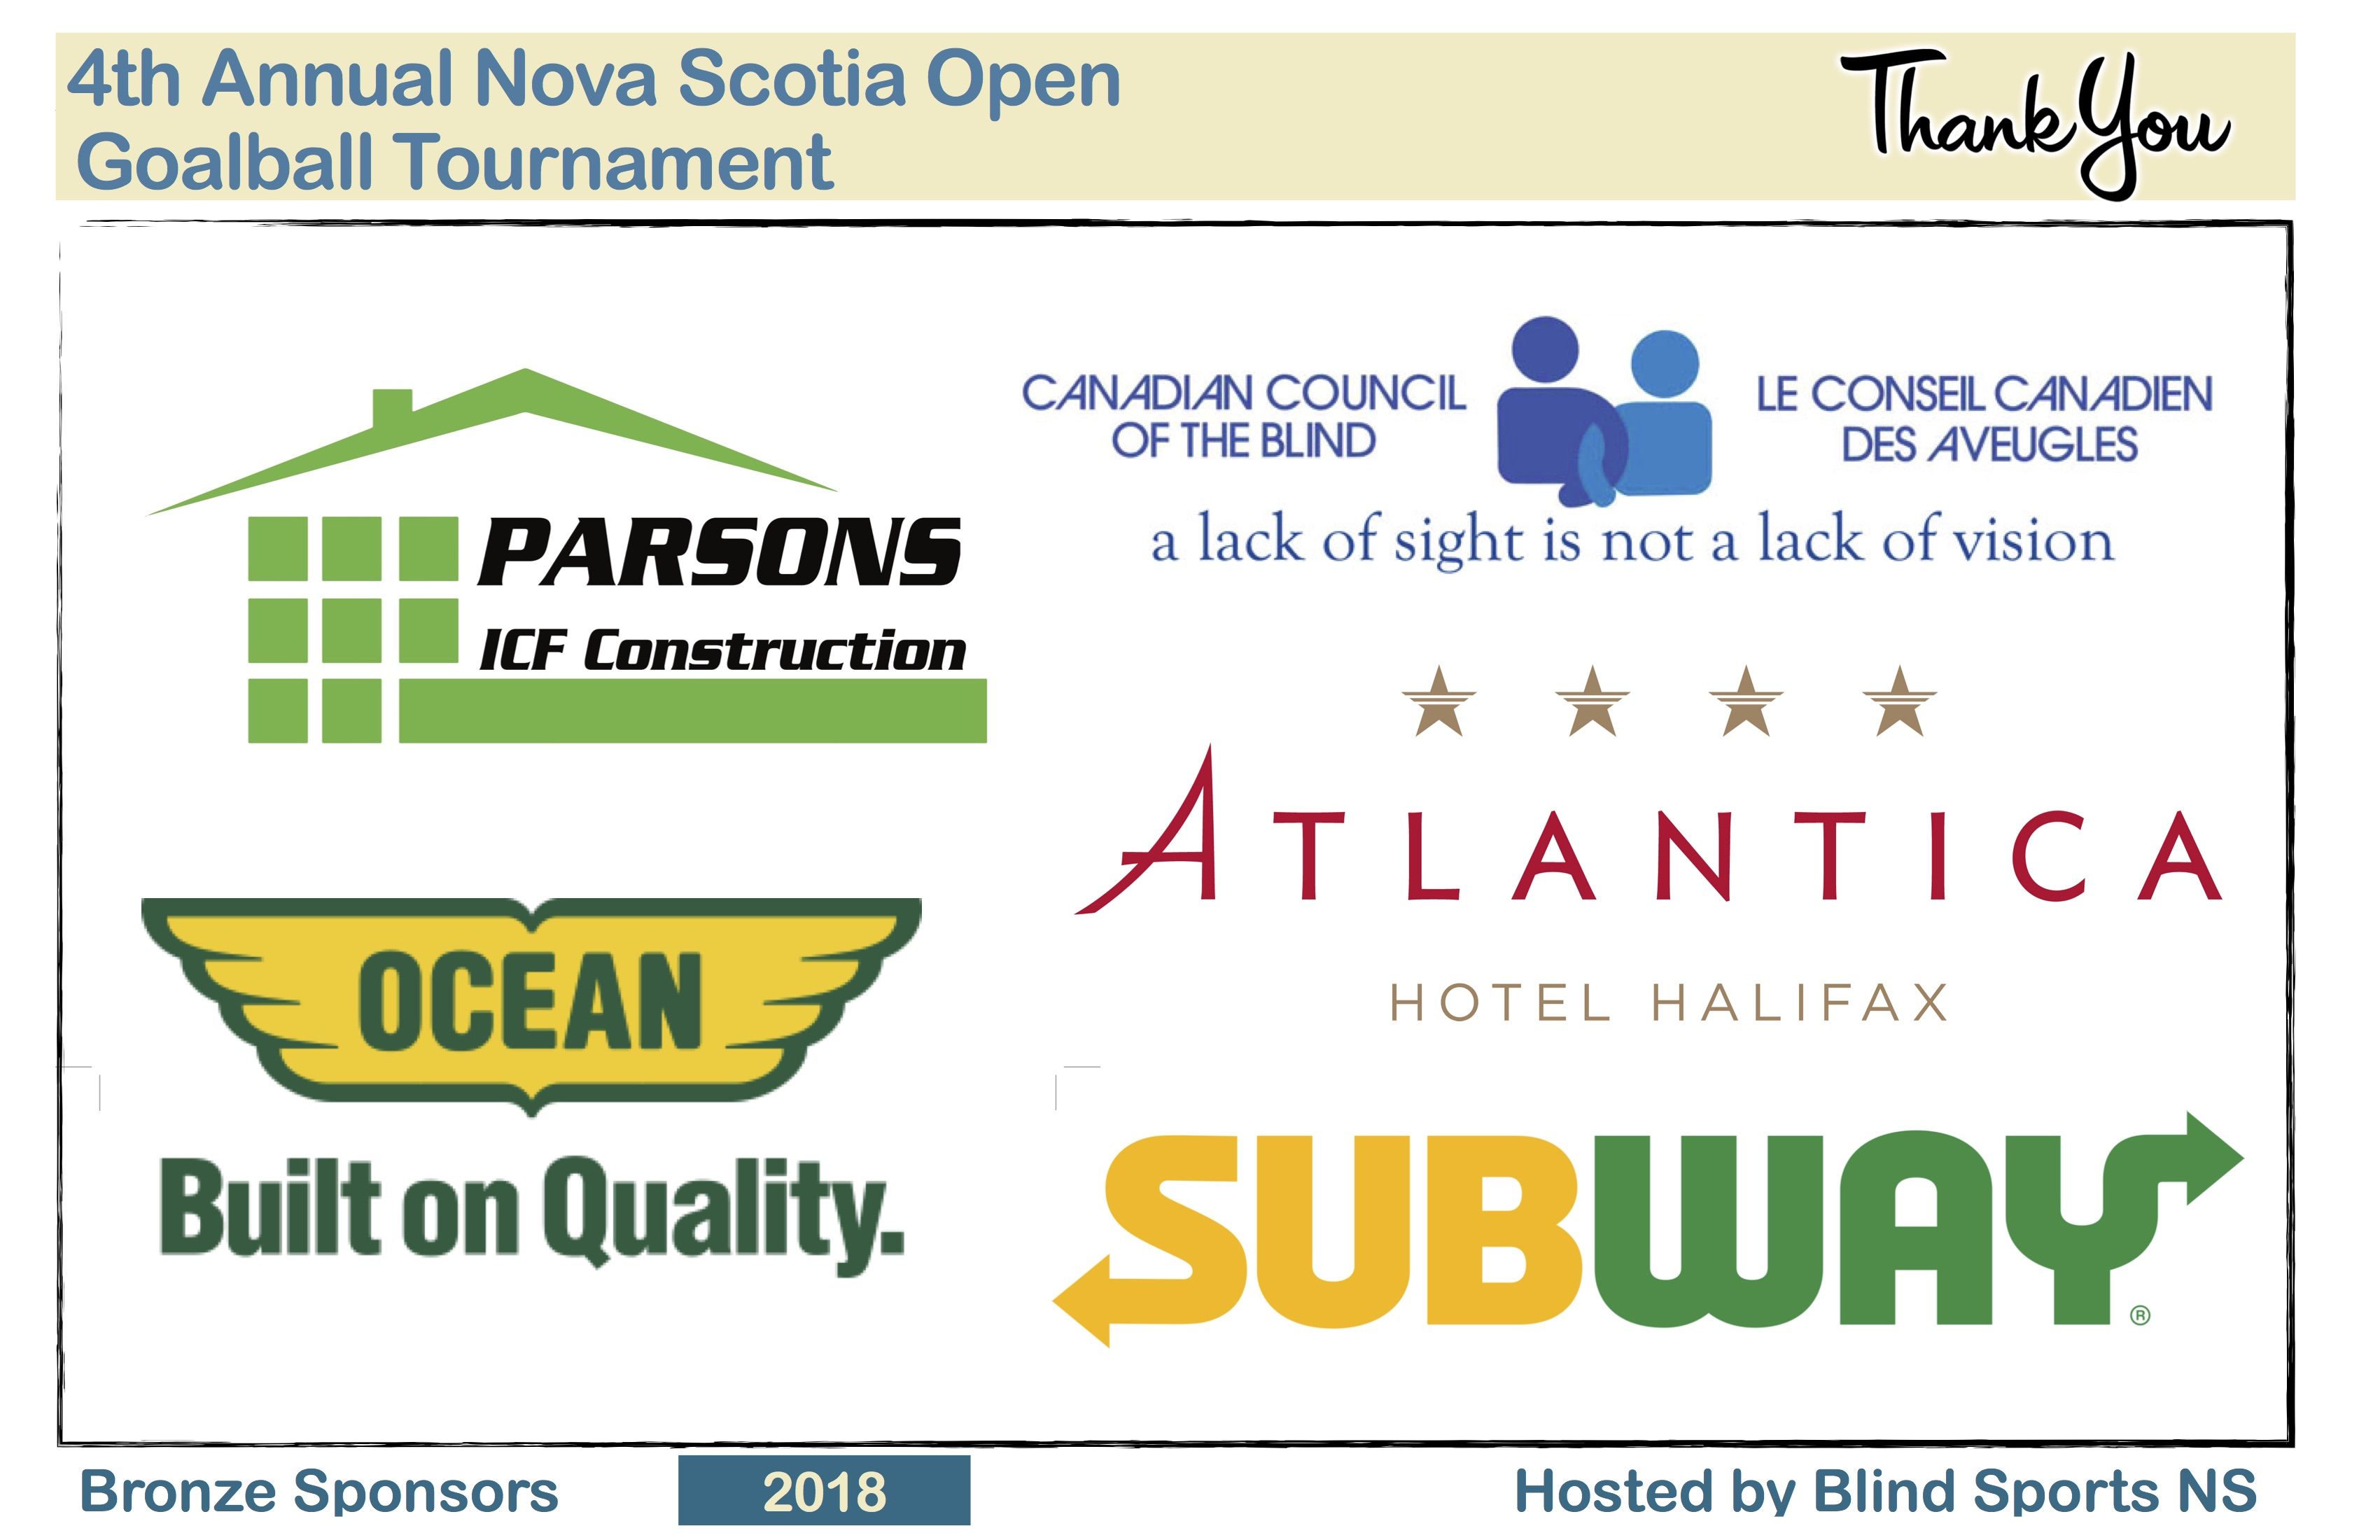 Bronze Sponsors: Parsons ICF Construction, Ocean - Built on Quality, Atlantica Hotel Halifax, Canadian Council of the Blind, and Subway.